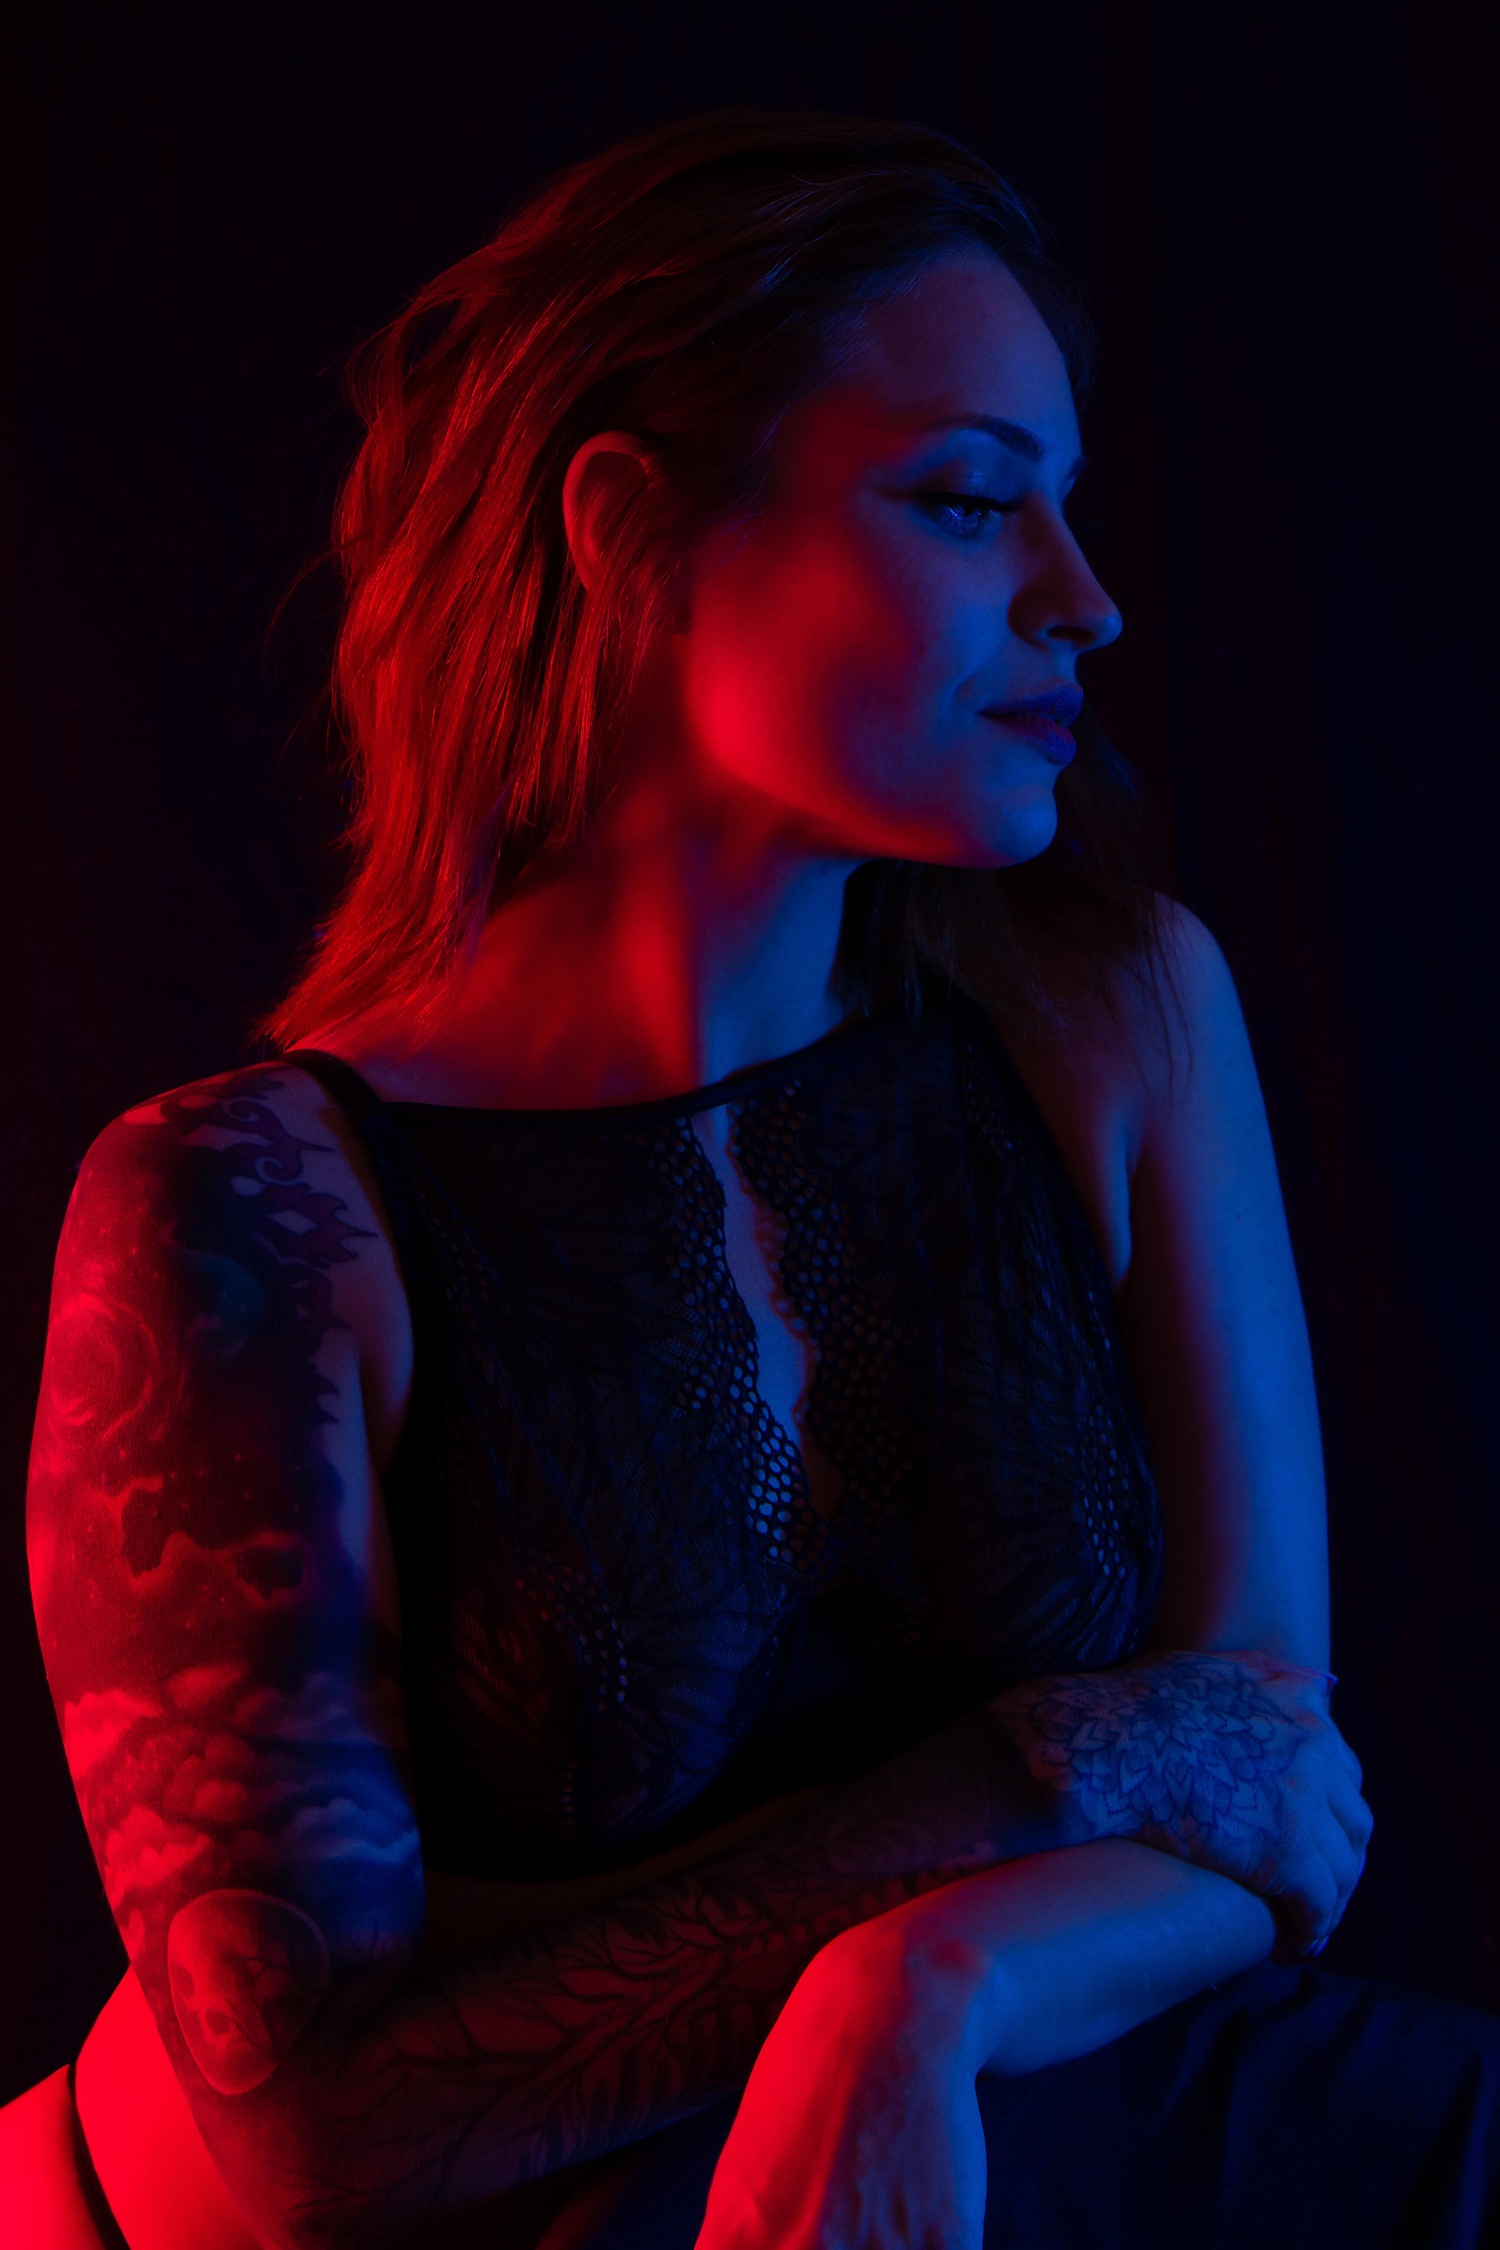 Saskatoon boudoir a woman in lingerie leans on the back of a chair, eyes closed, face looking off camera. Split lighting with red and blue light